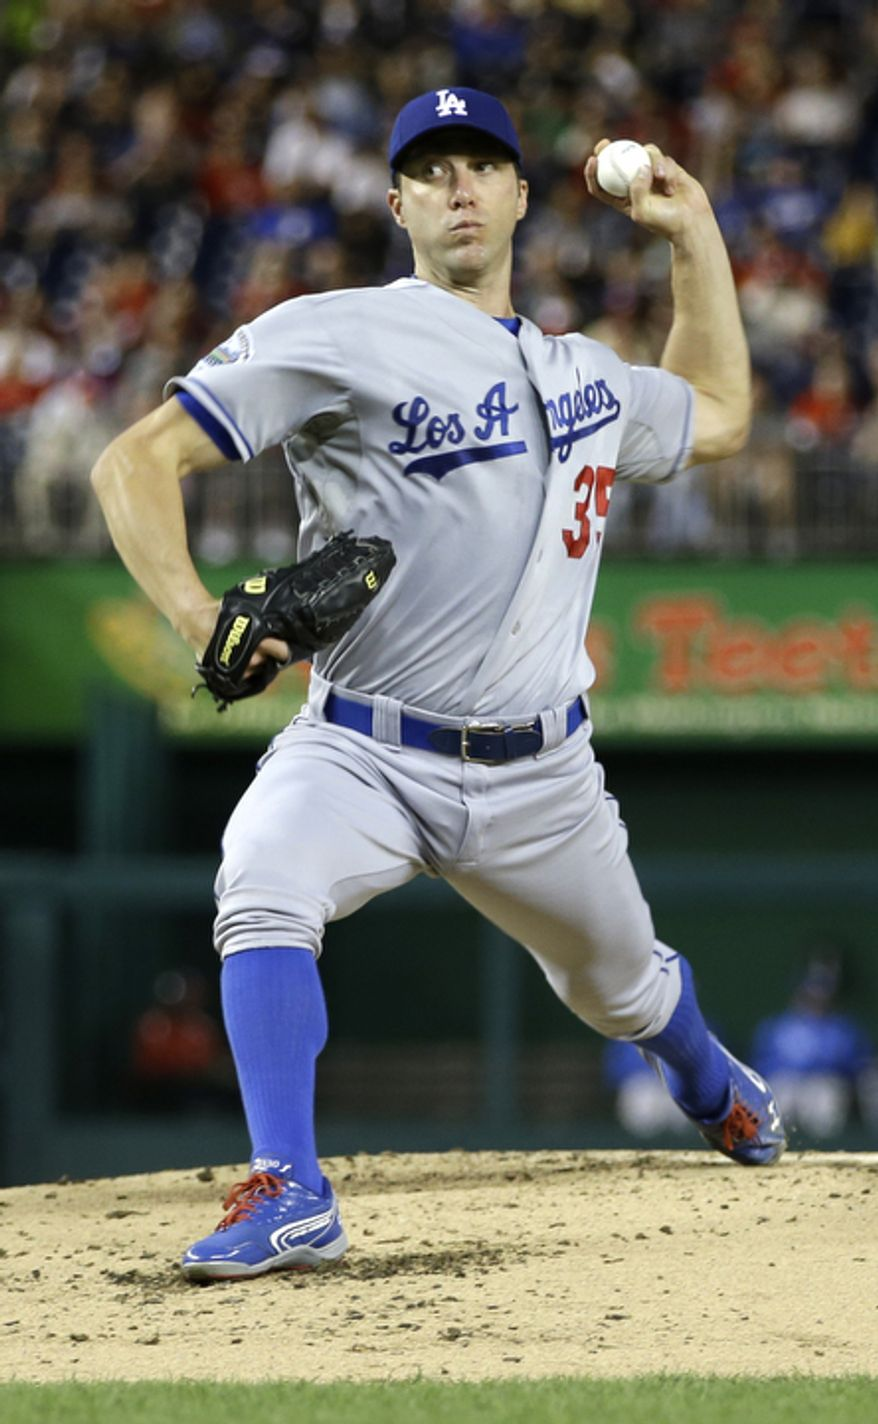 Los Angeles Dodgers starting pitcher Chris Capuano (35) throws a pitch against the Washington Nationals during the second inning of a baseball game at Nationals Park. (AP Photo/Jacquelyn Martin)